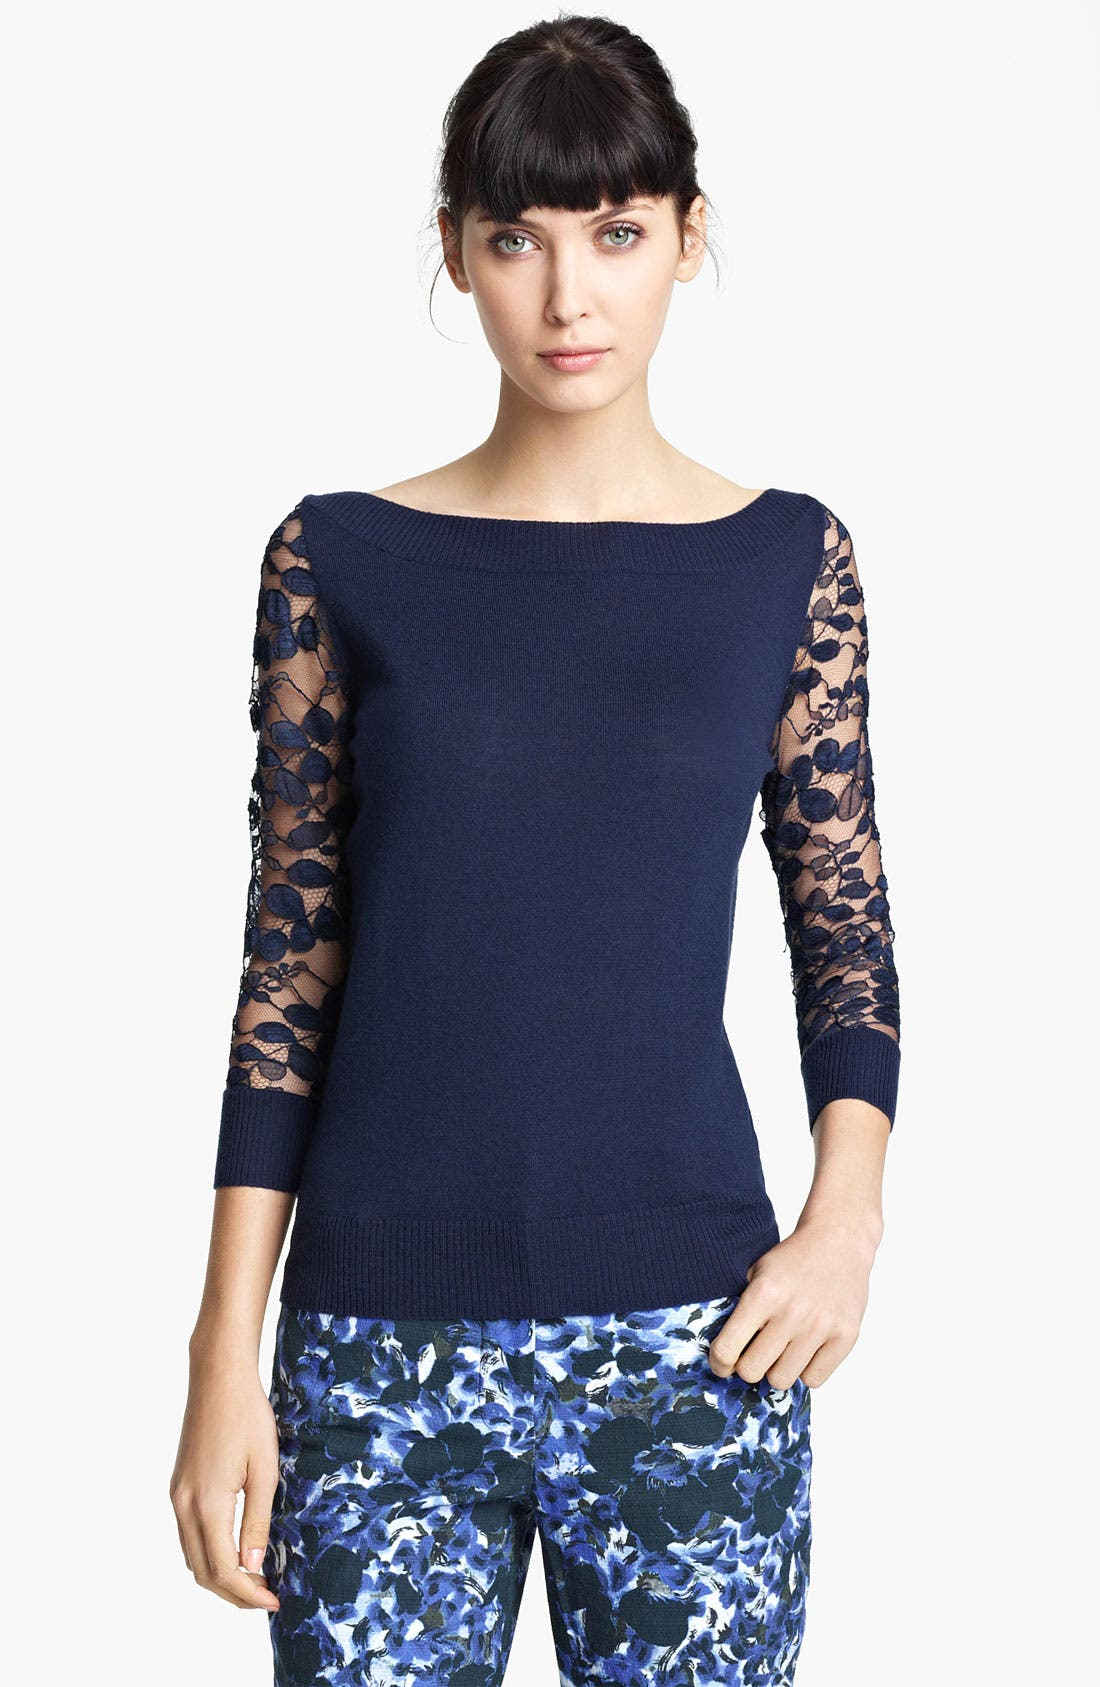 Alternate Image 1 Selected - Erdem Lace Sleeve Knit Top